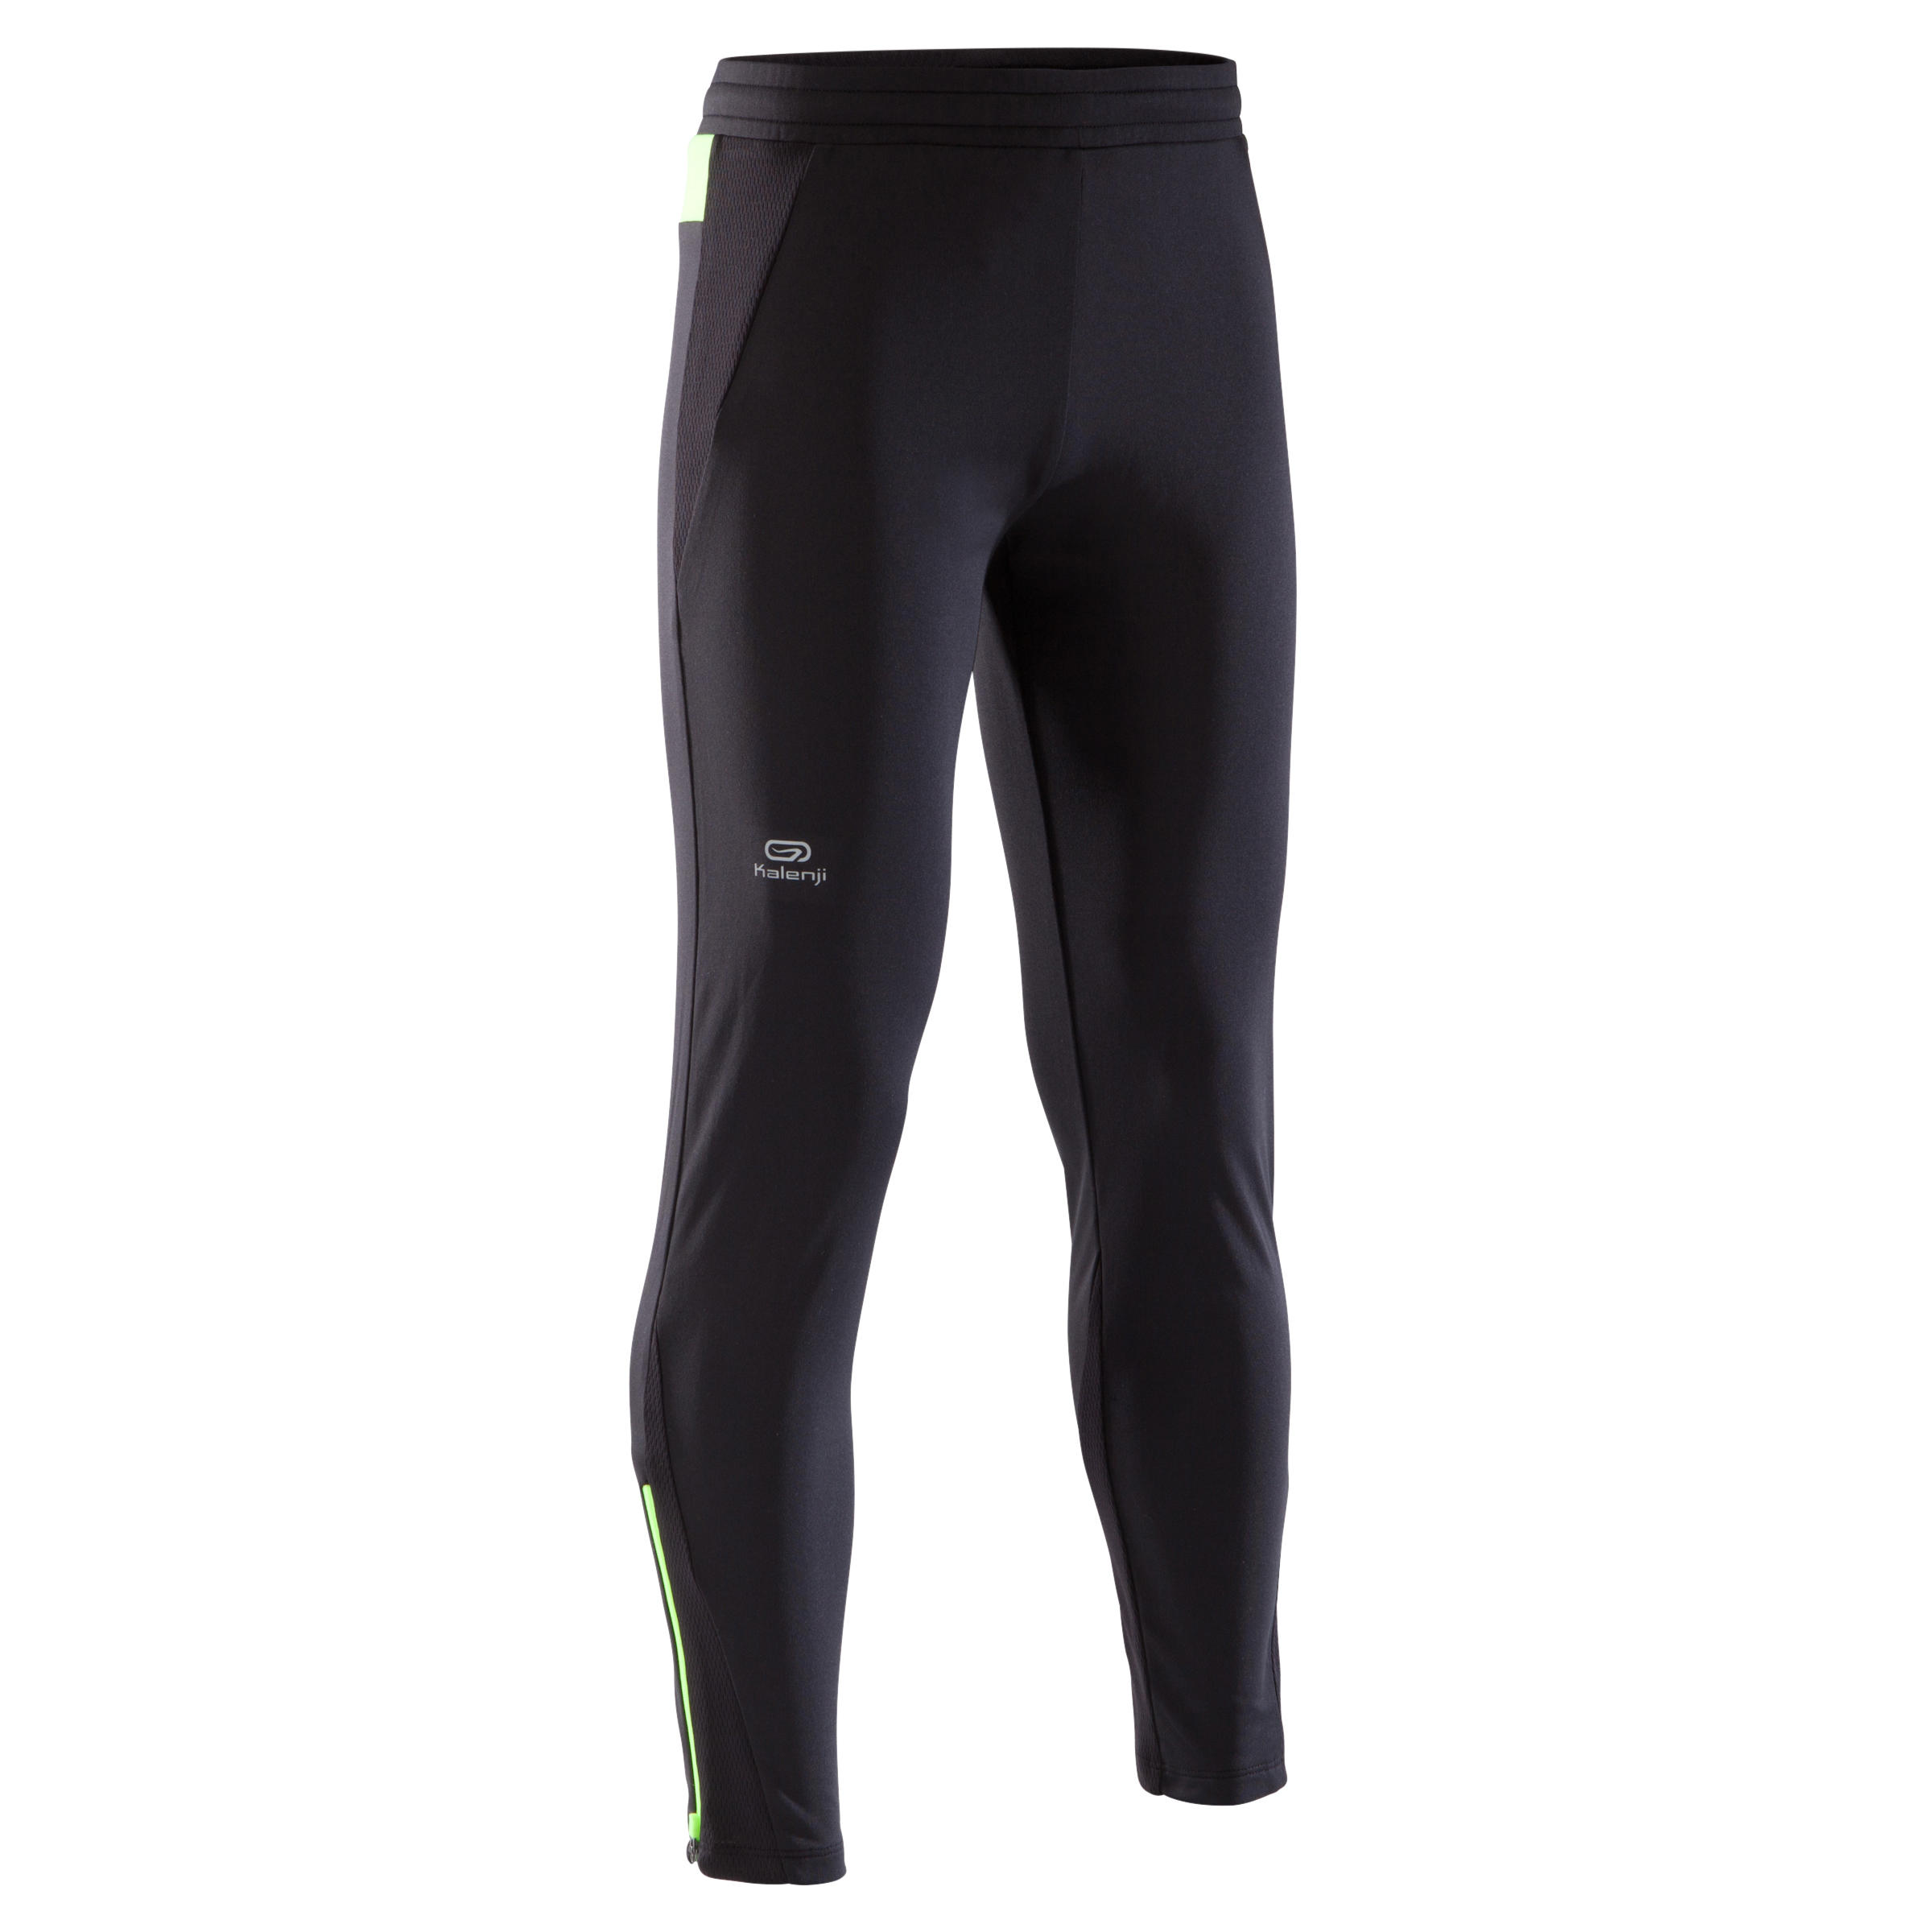 pantalón de atletismo júnior run warm negro fluo amarillo